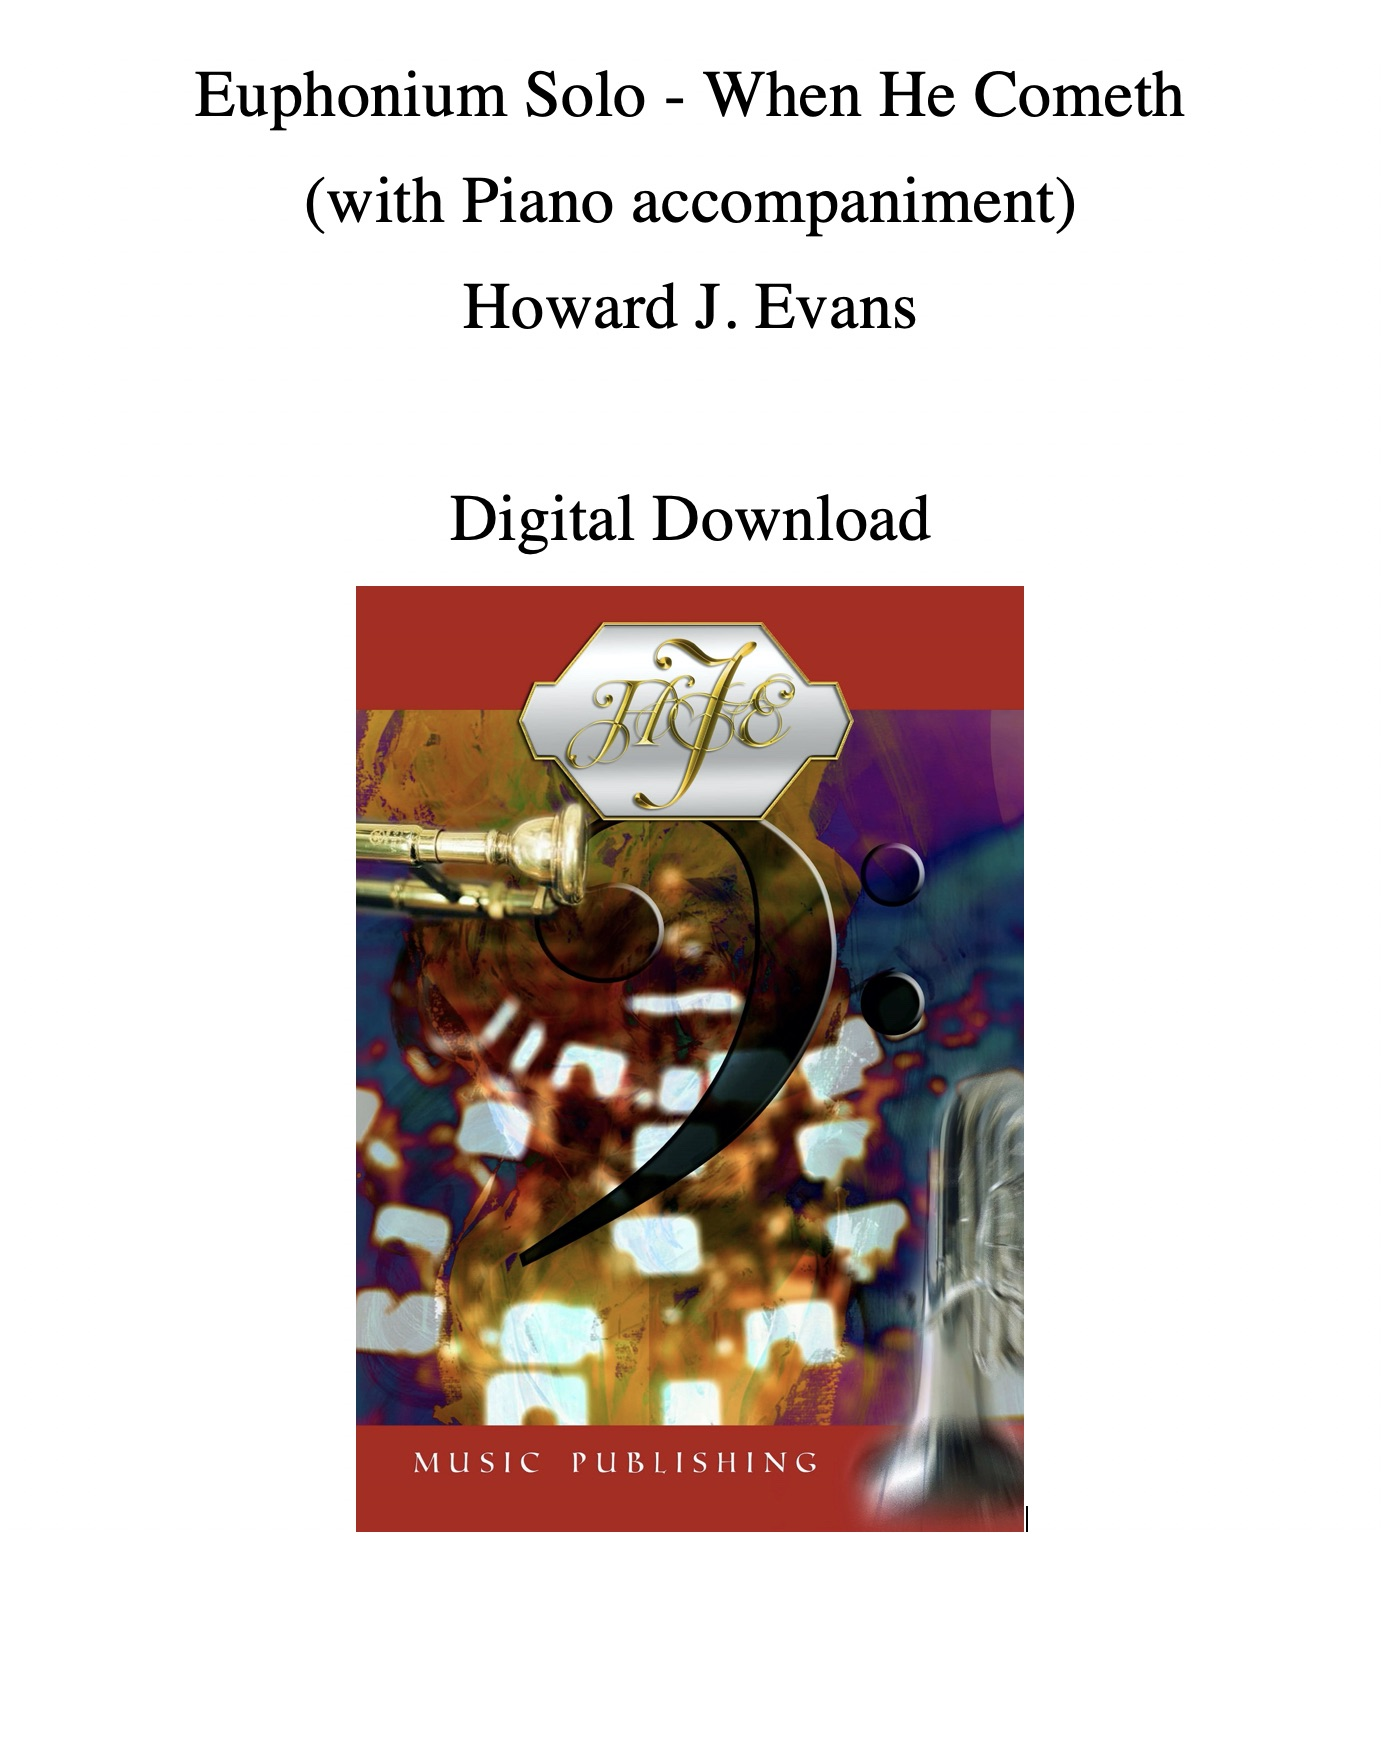 DIGITAL DOWNLOAD - When He Cometh - Howard J. Evans - Euphonium and Piano